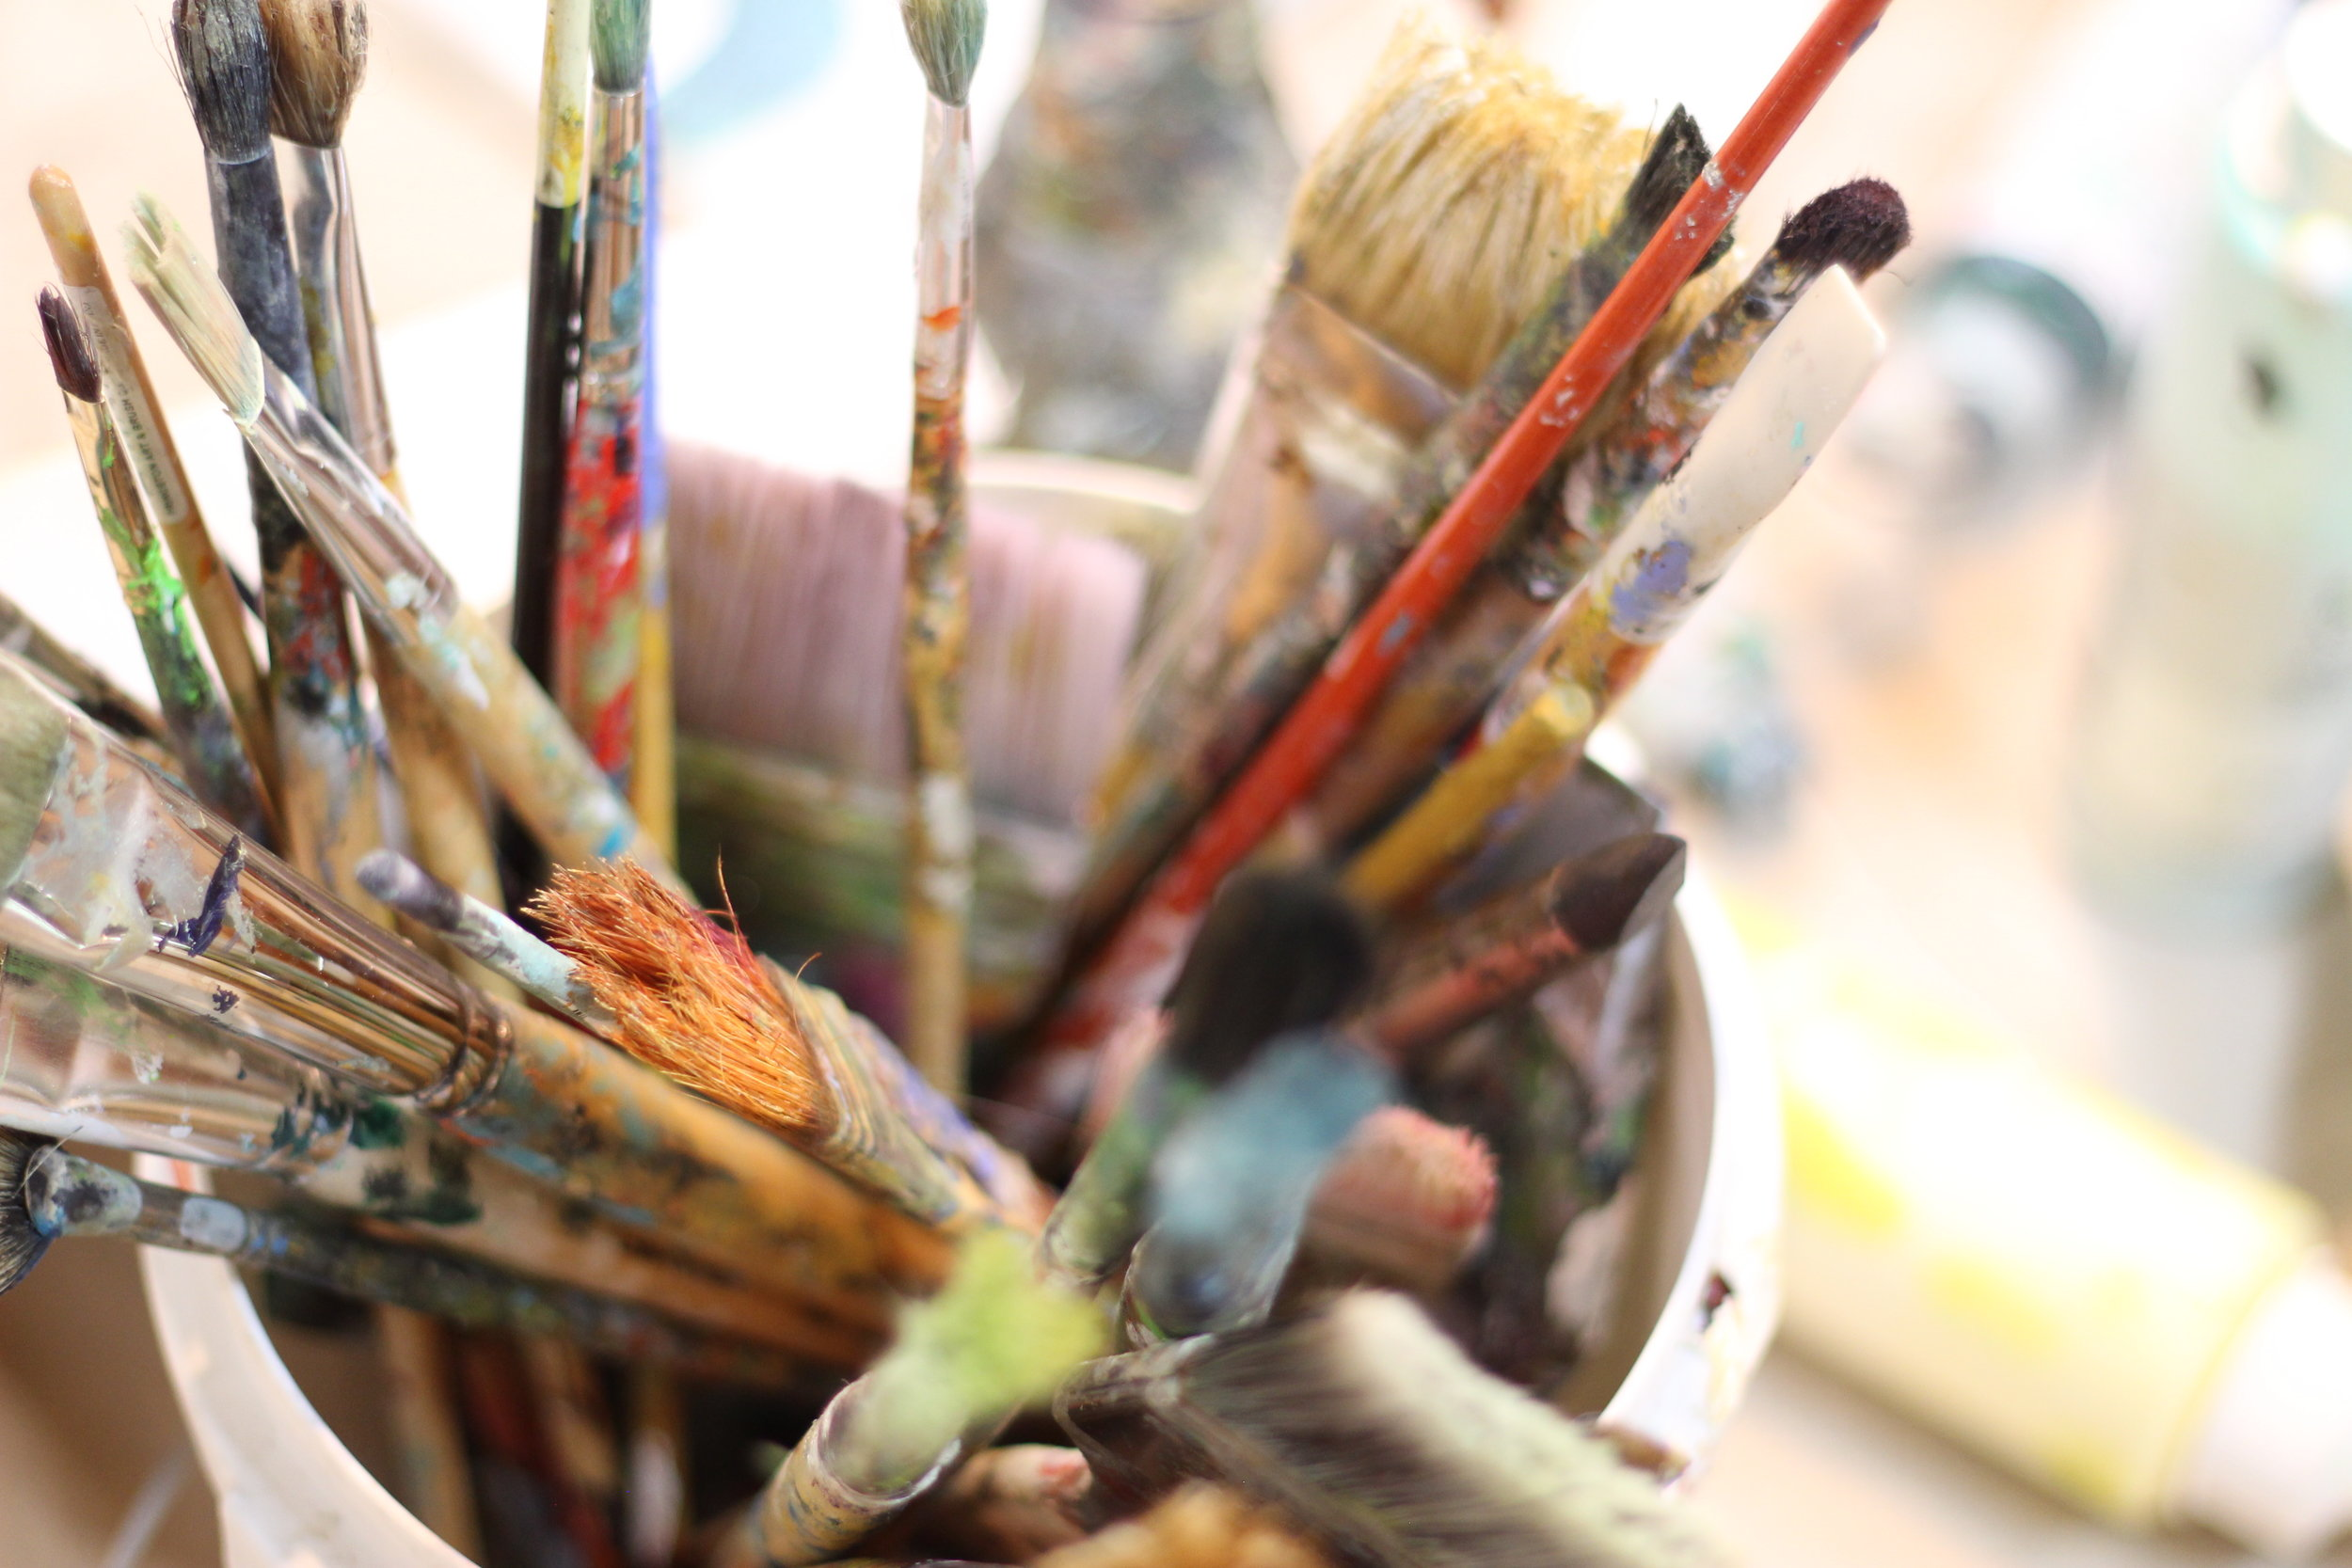 well loved brushes in the studio....